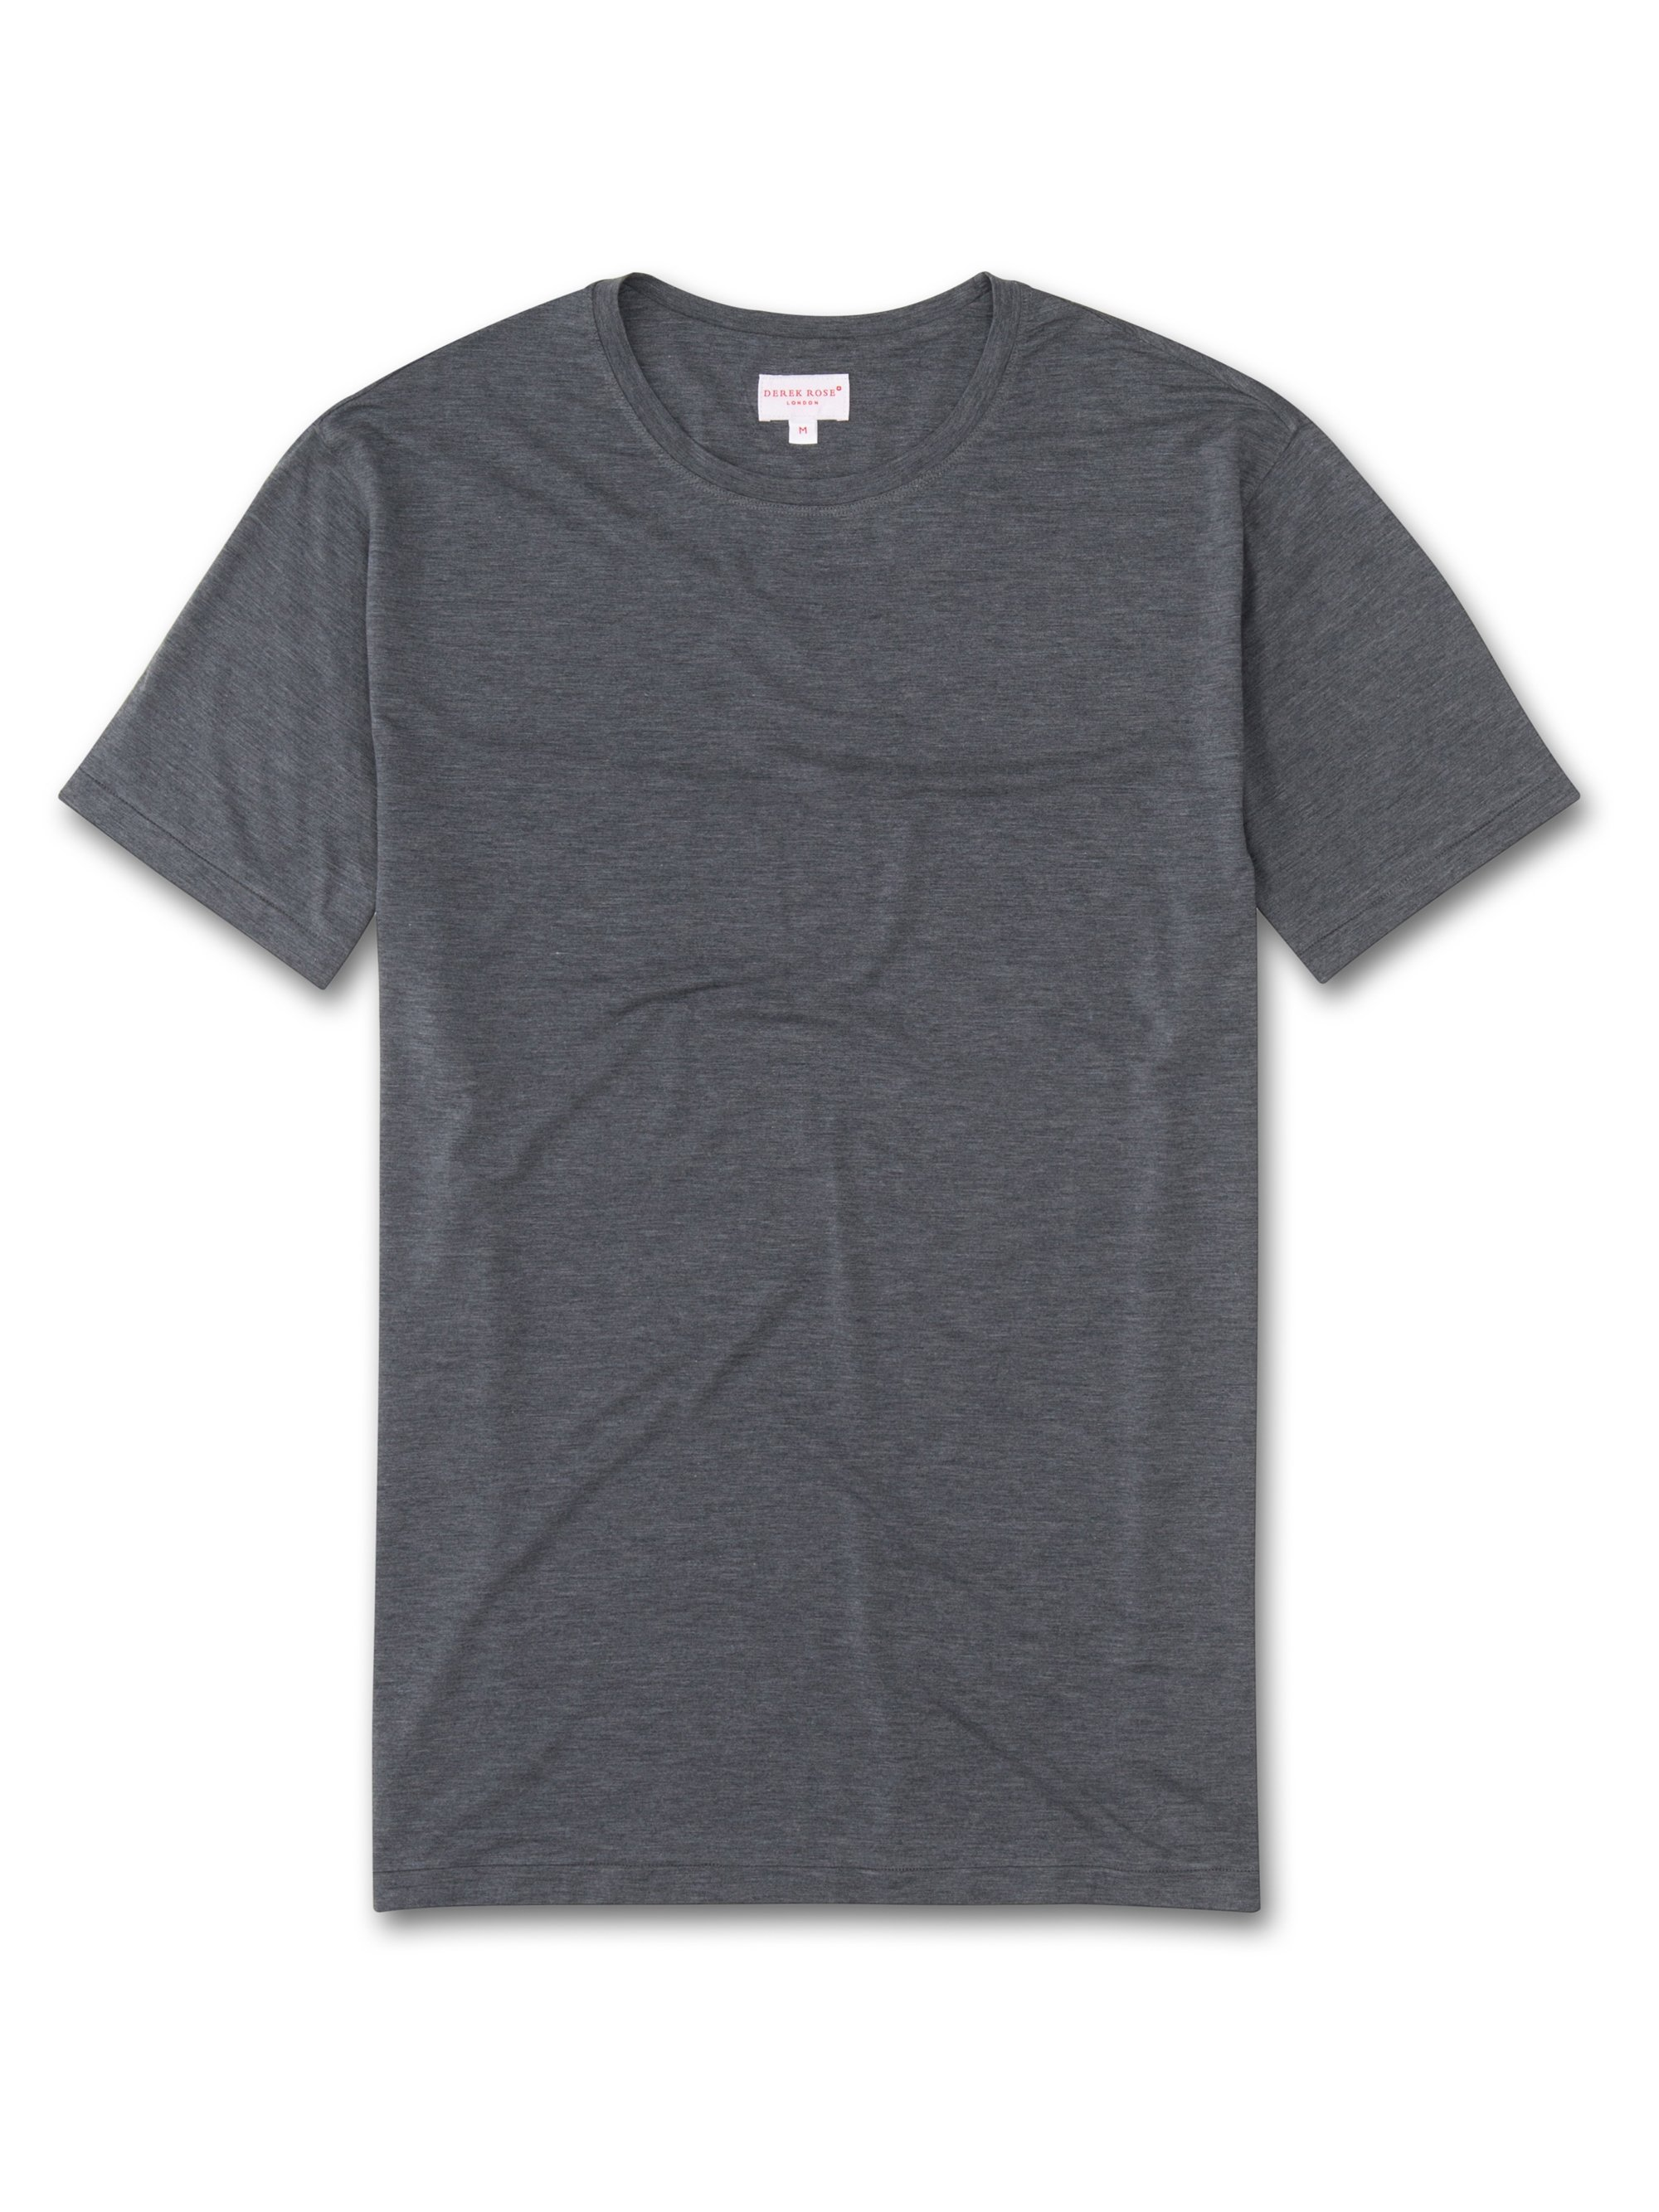 Men's Short Sleeve T-Shirt Ethan Micro Modal Stretch Charcoal